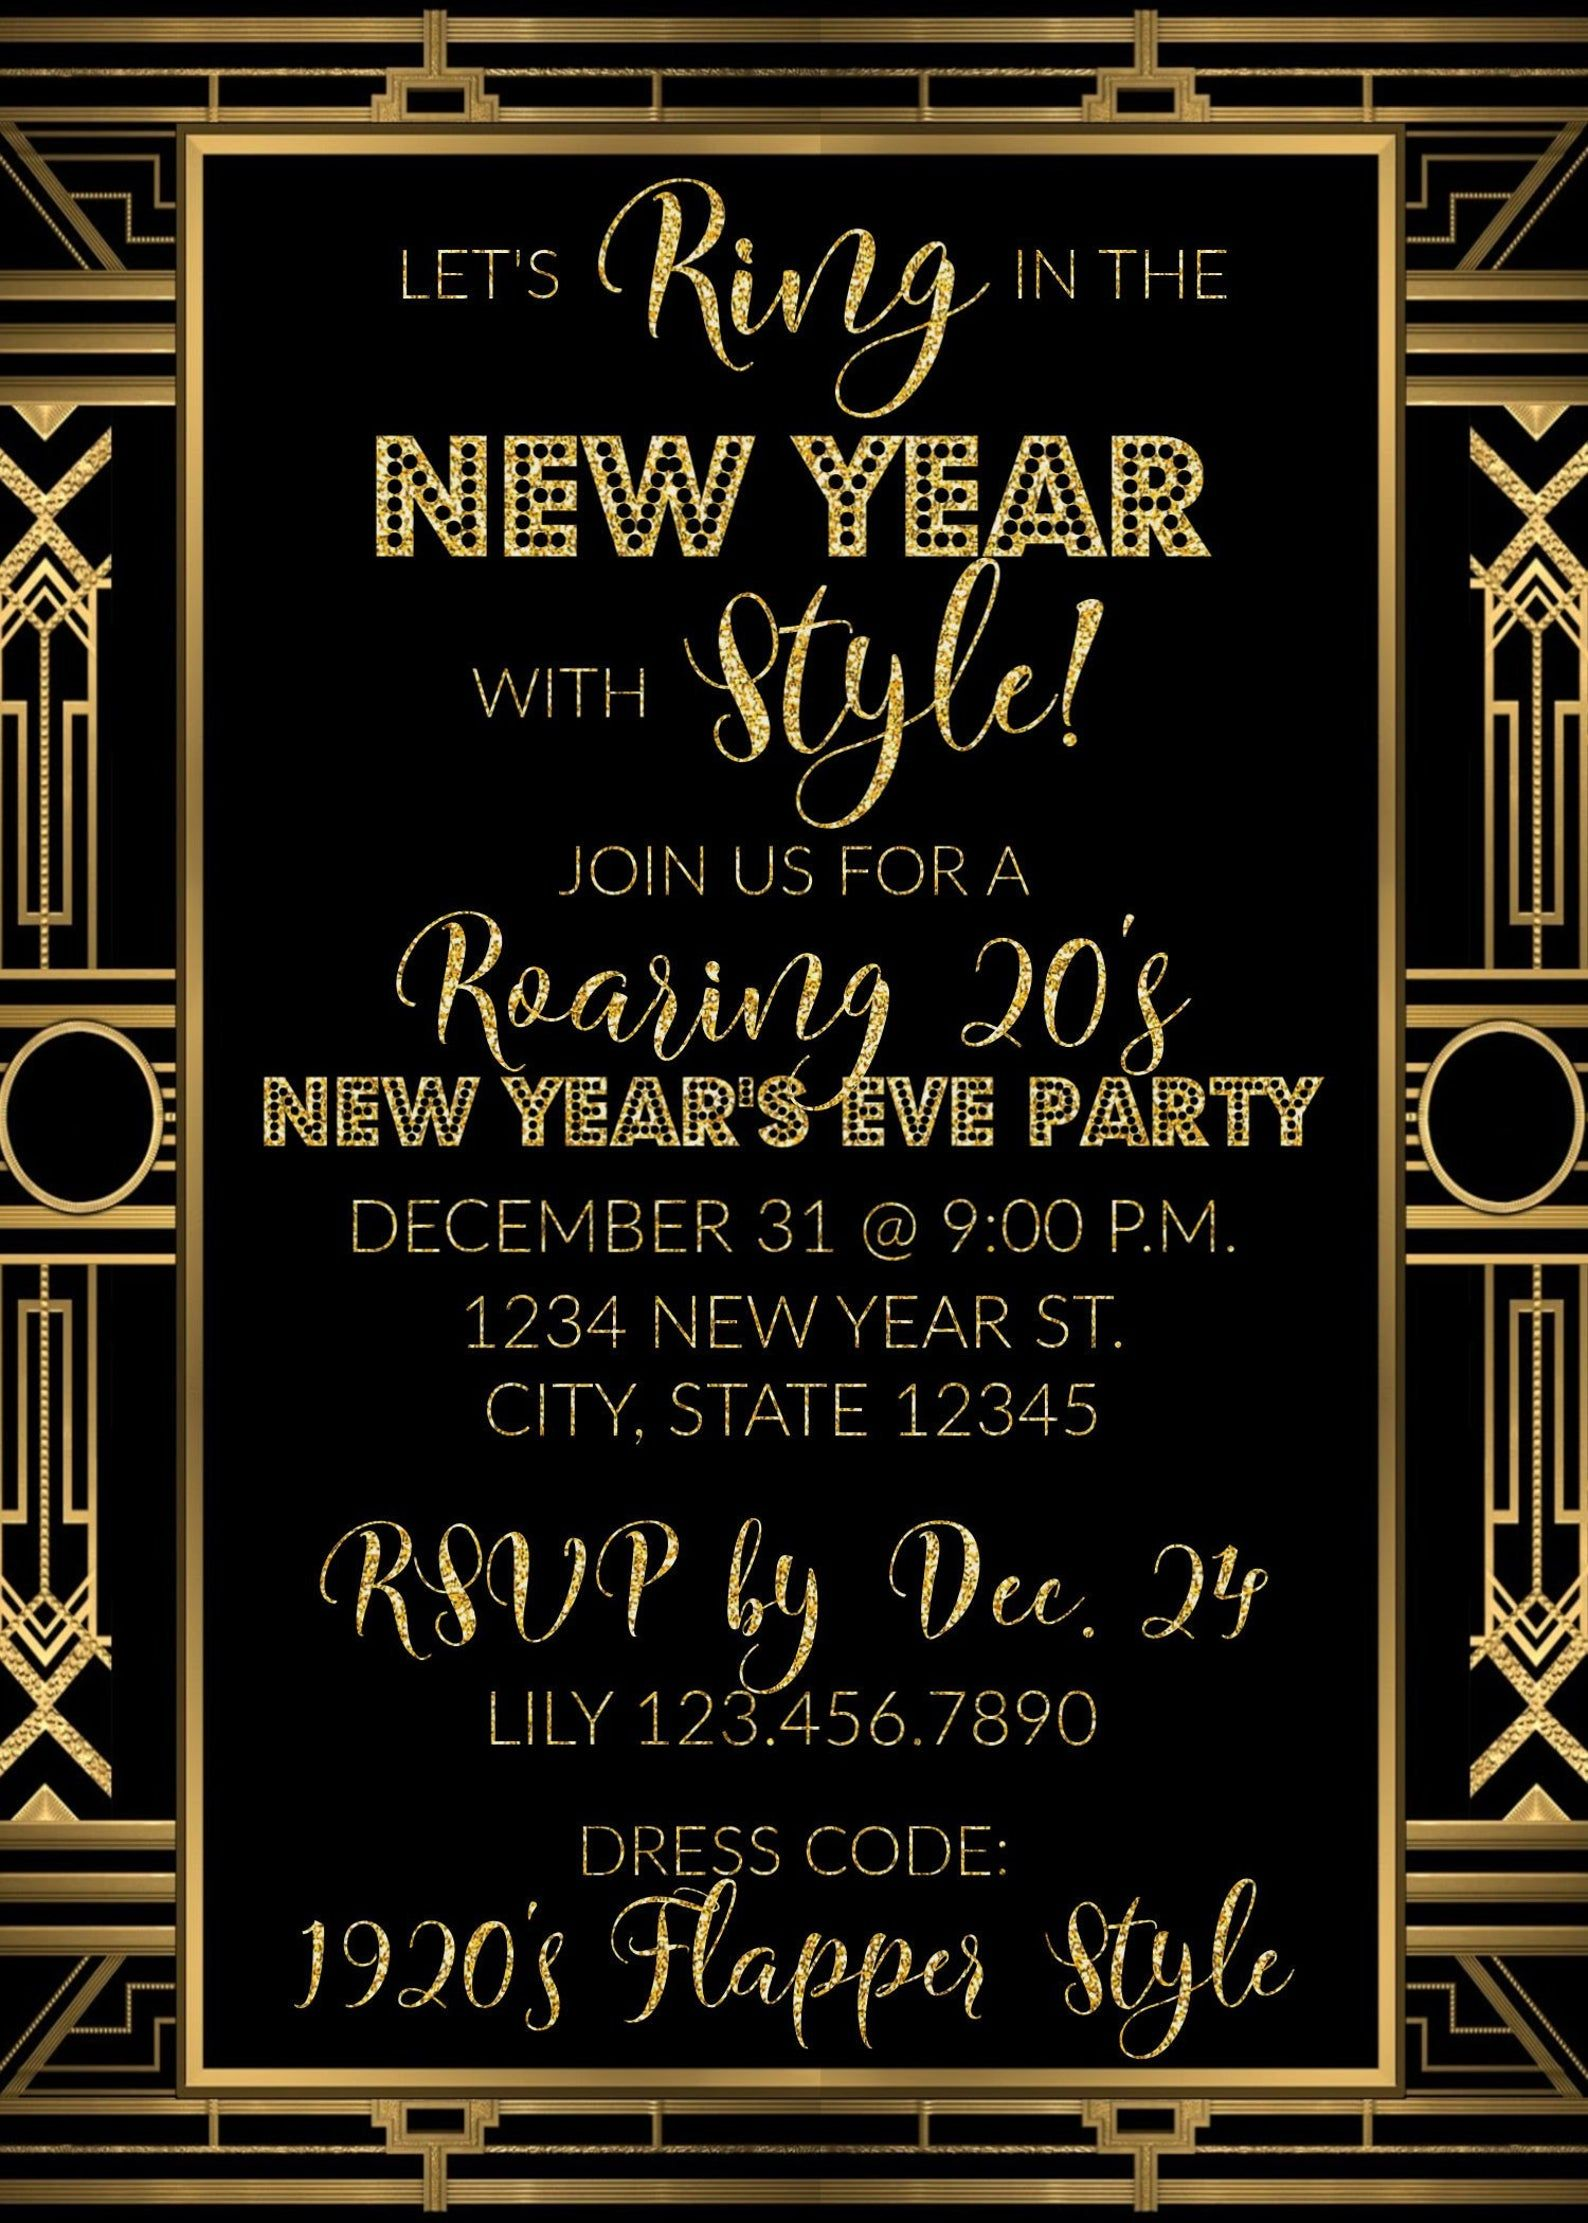 Roaring 20s New Years Eve Party Invitation Ring in the New